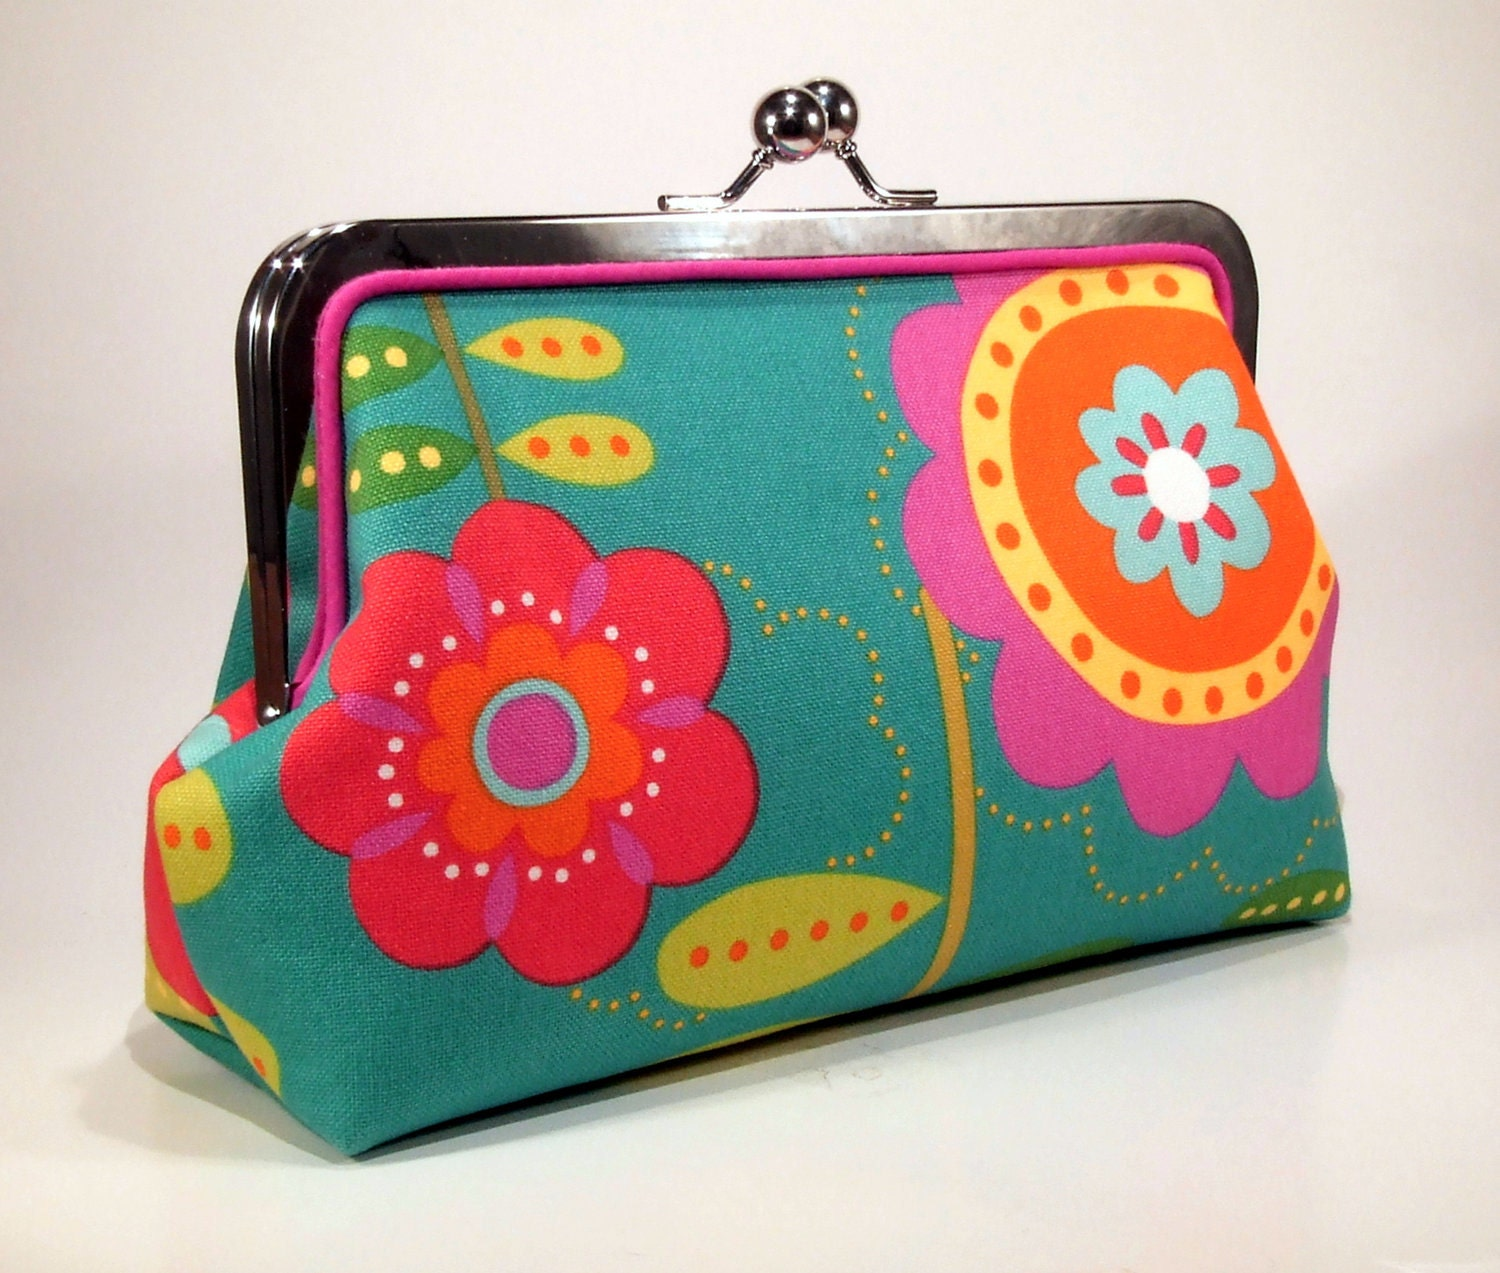 Cotton Clutch - Turquoise Big Flowers with Hot Pink Piping - FABbyCAB